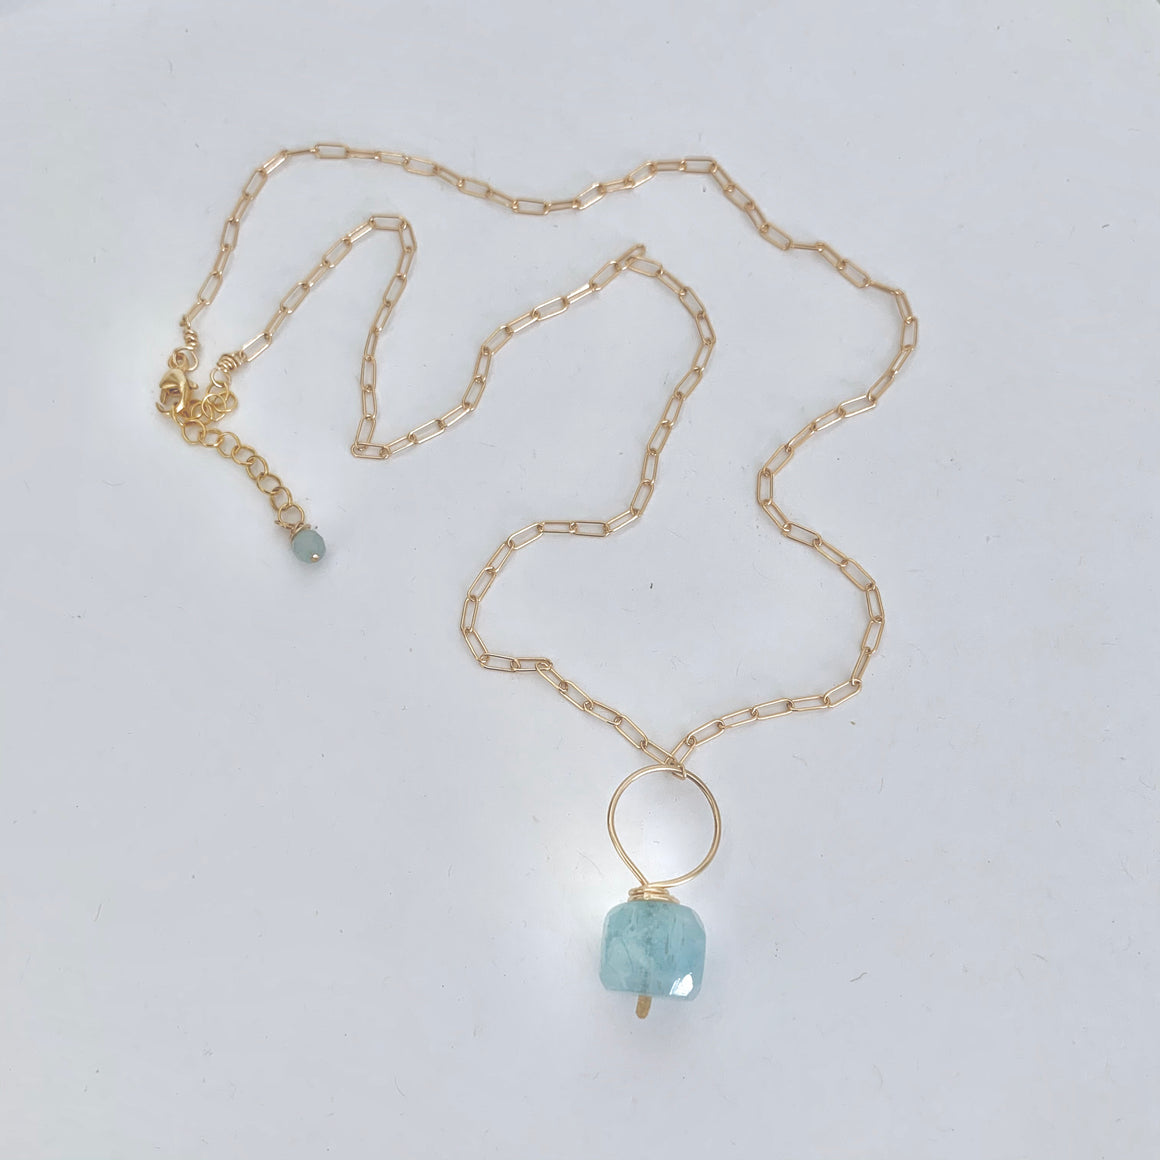 Jen aquamarine nugget necklace